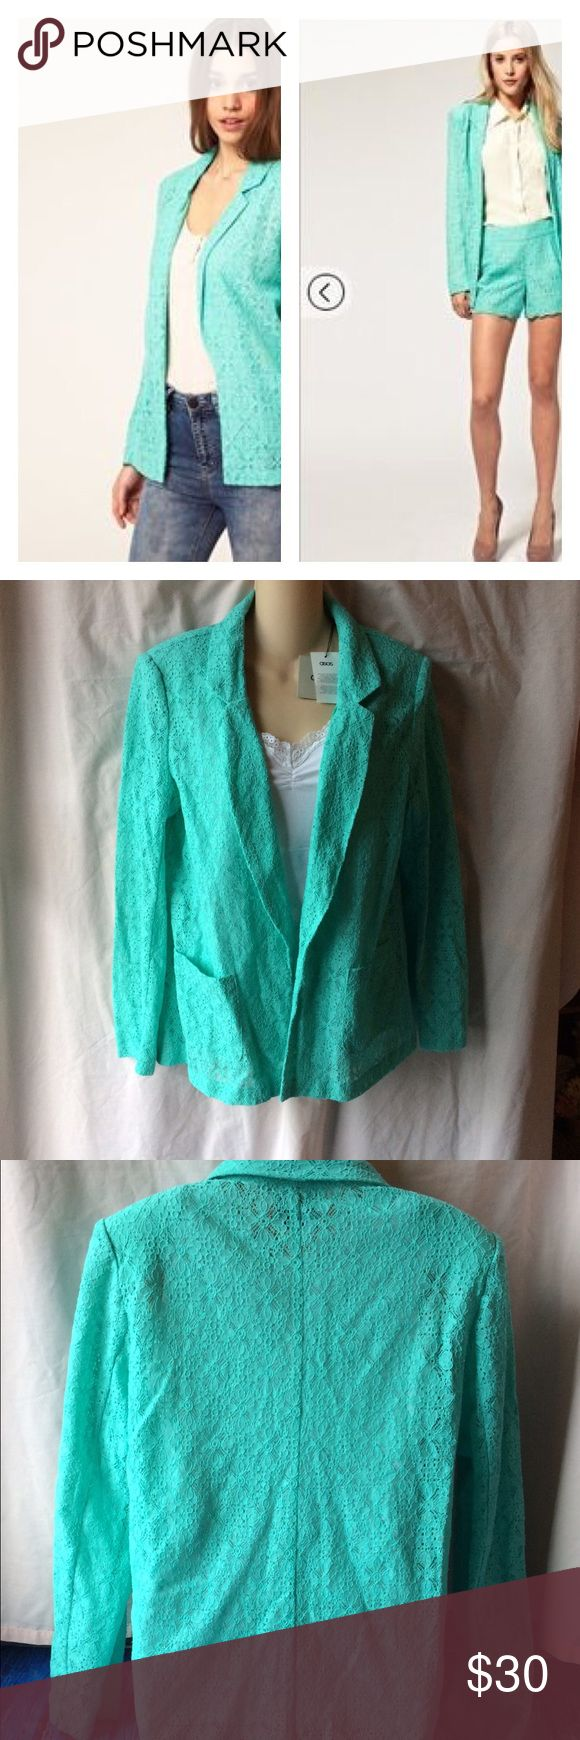 """ASOS Candy Mint Green Lace Jacket US 10 NEW Brand new pretty lace blazer by asos. Size Us 10, U.K. 14. 81% cotton, 19% polyamide. Approximate measurements are; 18"""" across lightly padded shoulders, 25"""" sleeves, 40""""across chest, 27"""" long. No trades. ASOS Jackets & Coats Blazers"""